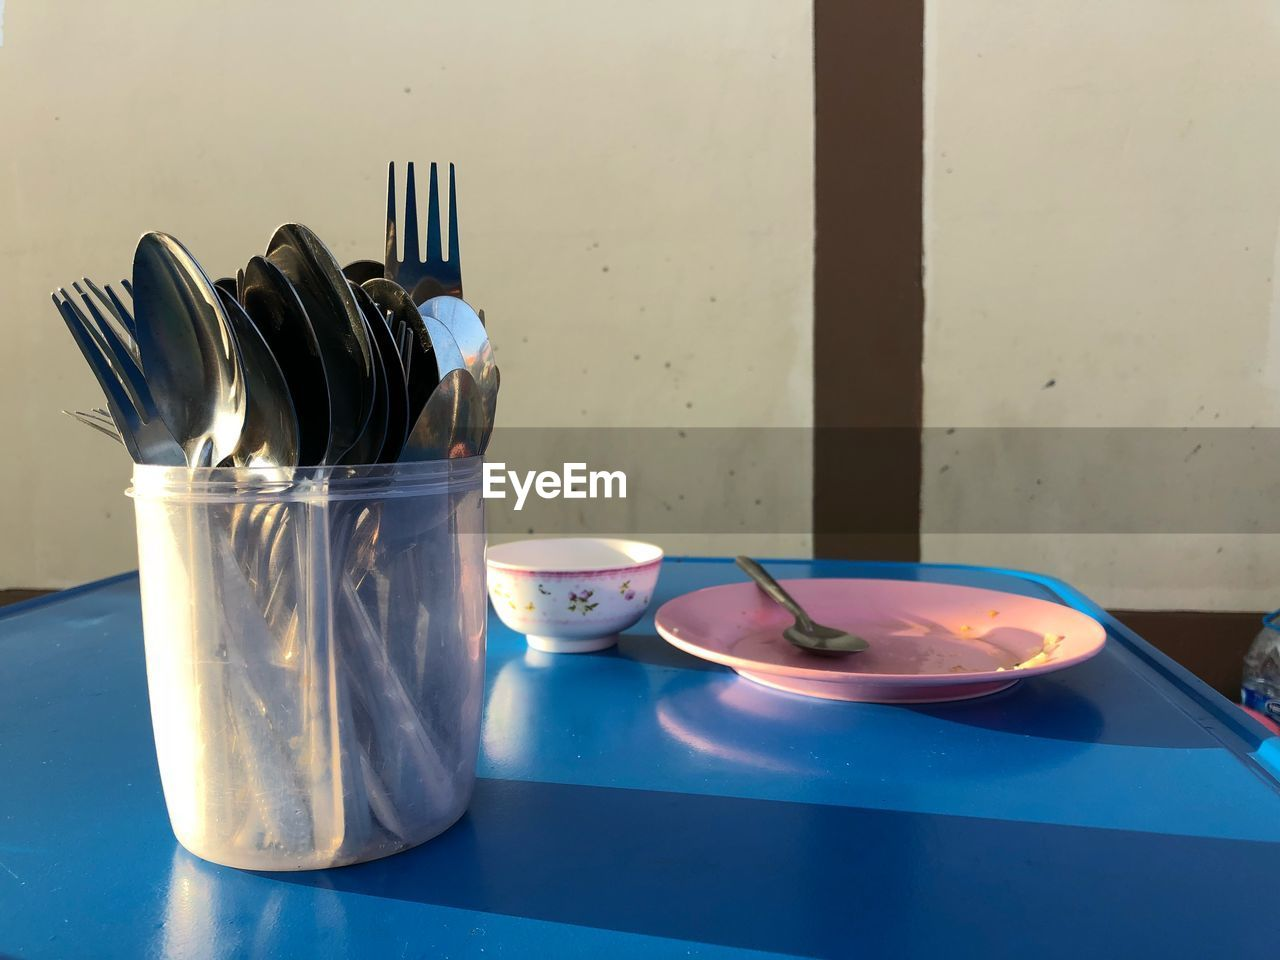 kitchen utensil, table, eating utensil, food and drink, indoors, household equipment, food, no people, still life, fork, container, spoon, bowl, plate, domestic room, blue, kitchen, close-up, domestic kitchen, wellbeing, tray, table knife, glass, breakfast